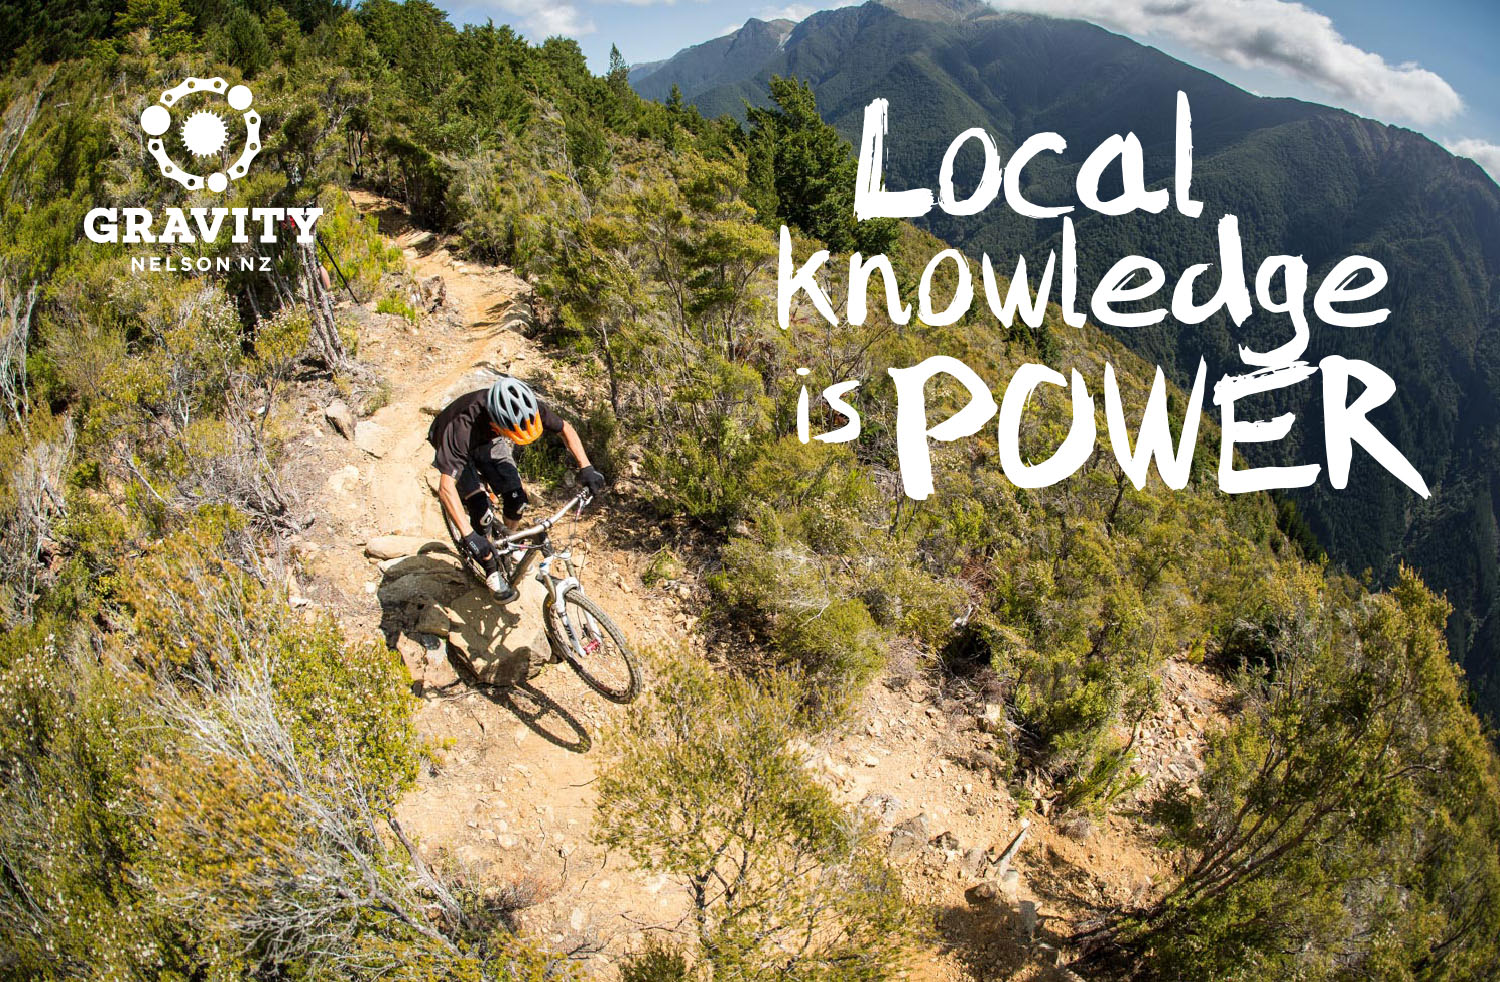 Gravity – Local Knowledge is Power